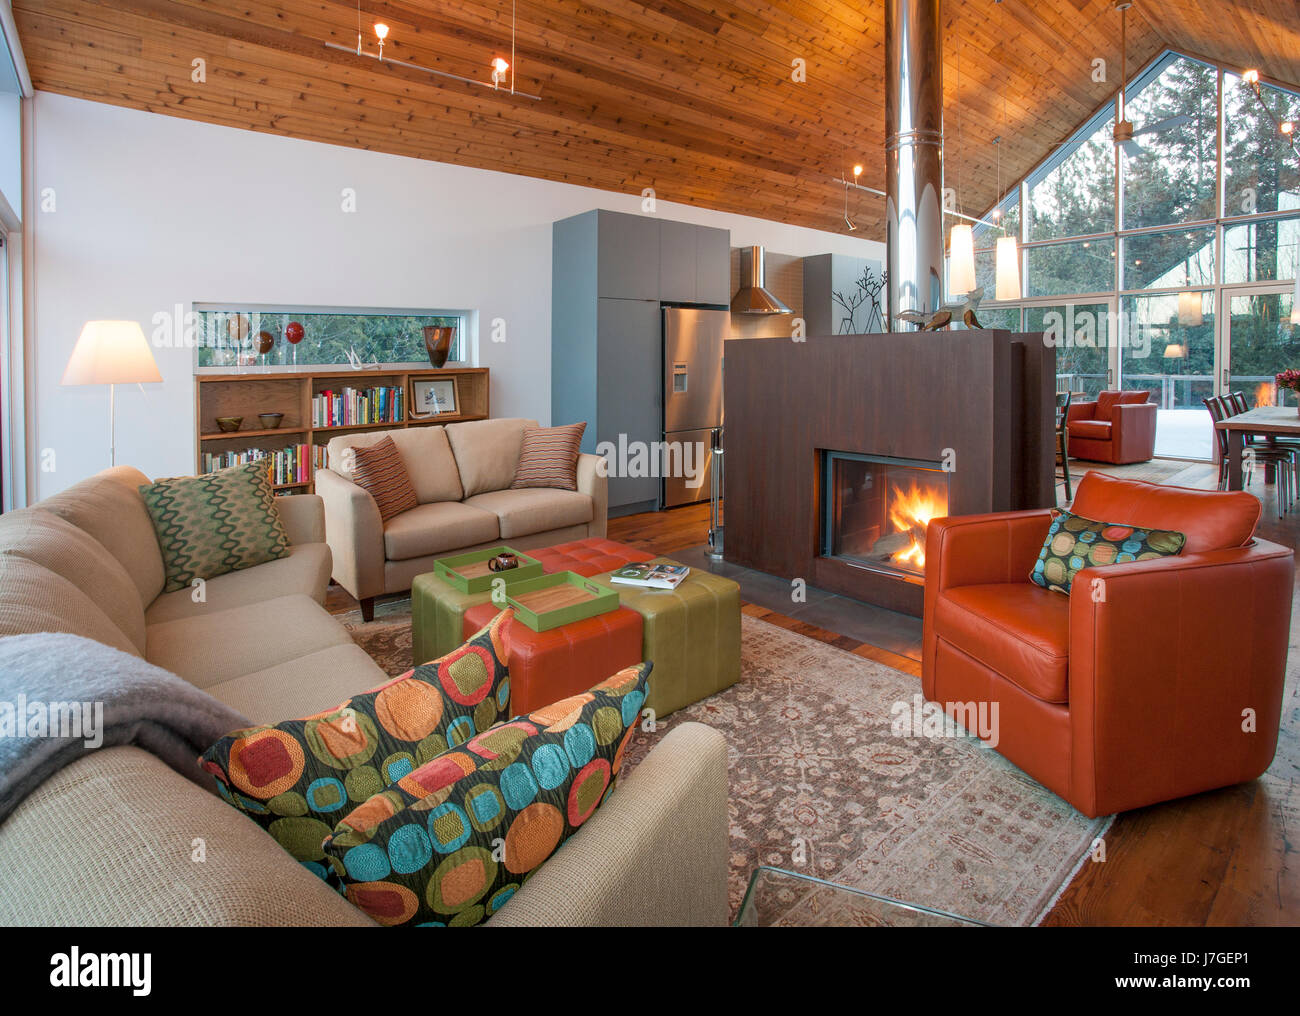 North America, Canada, Ontario, living room with steel fireplace - Stock Image